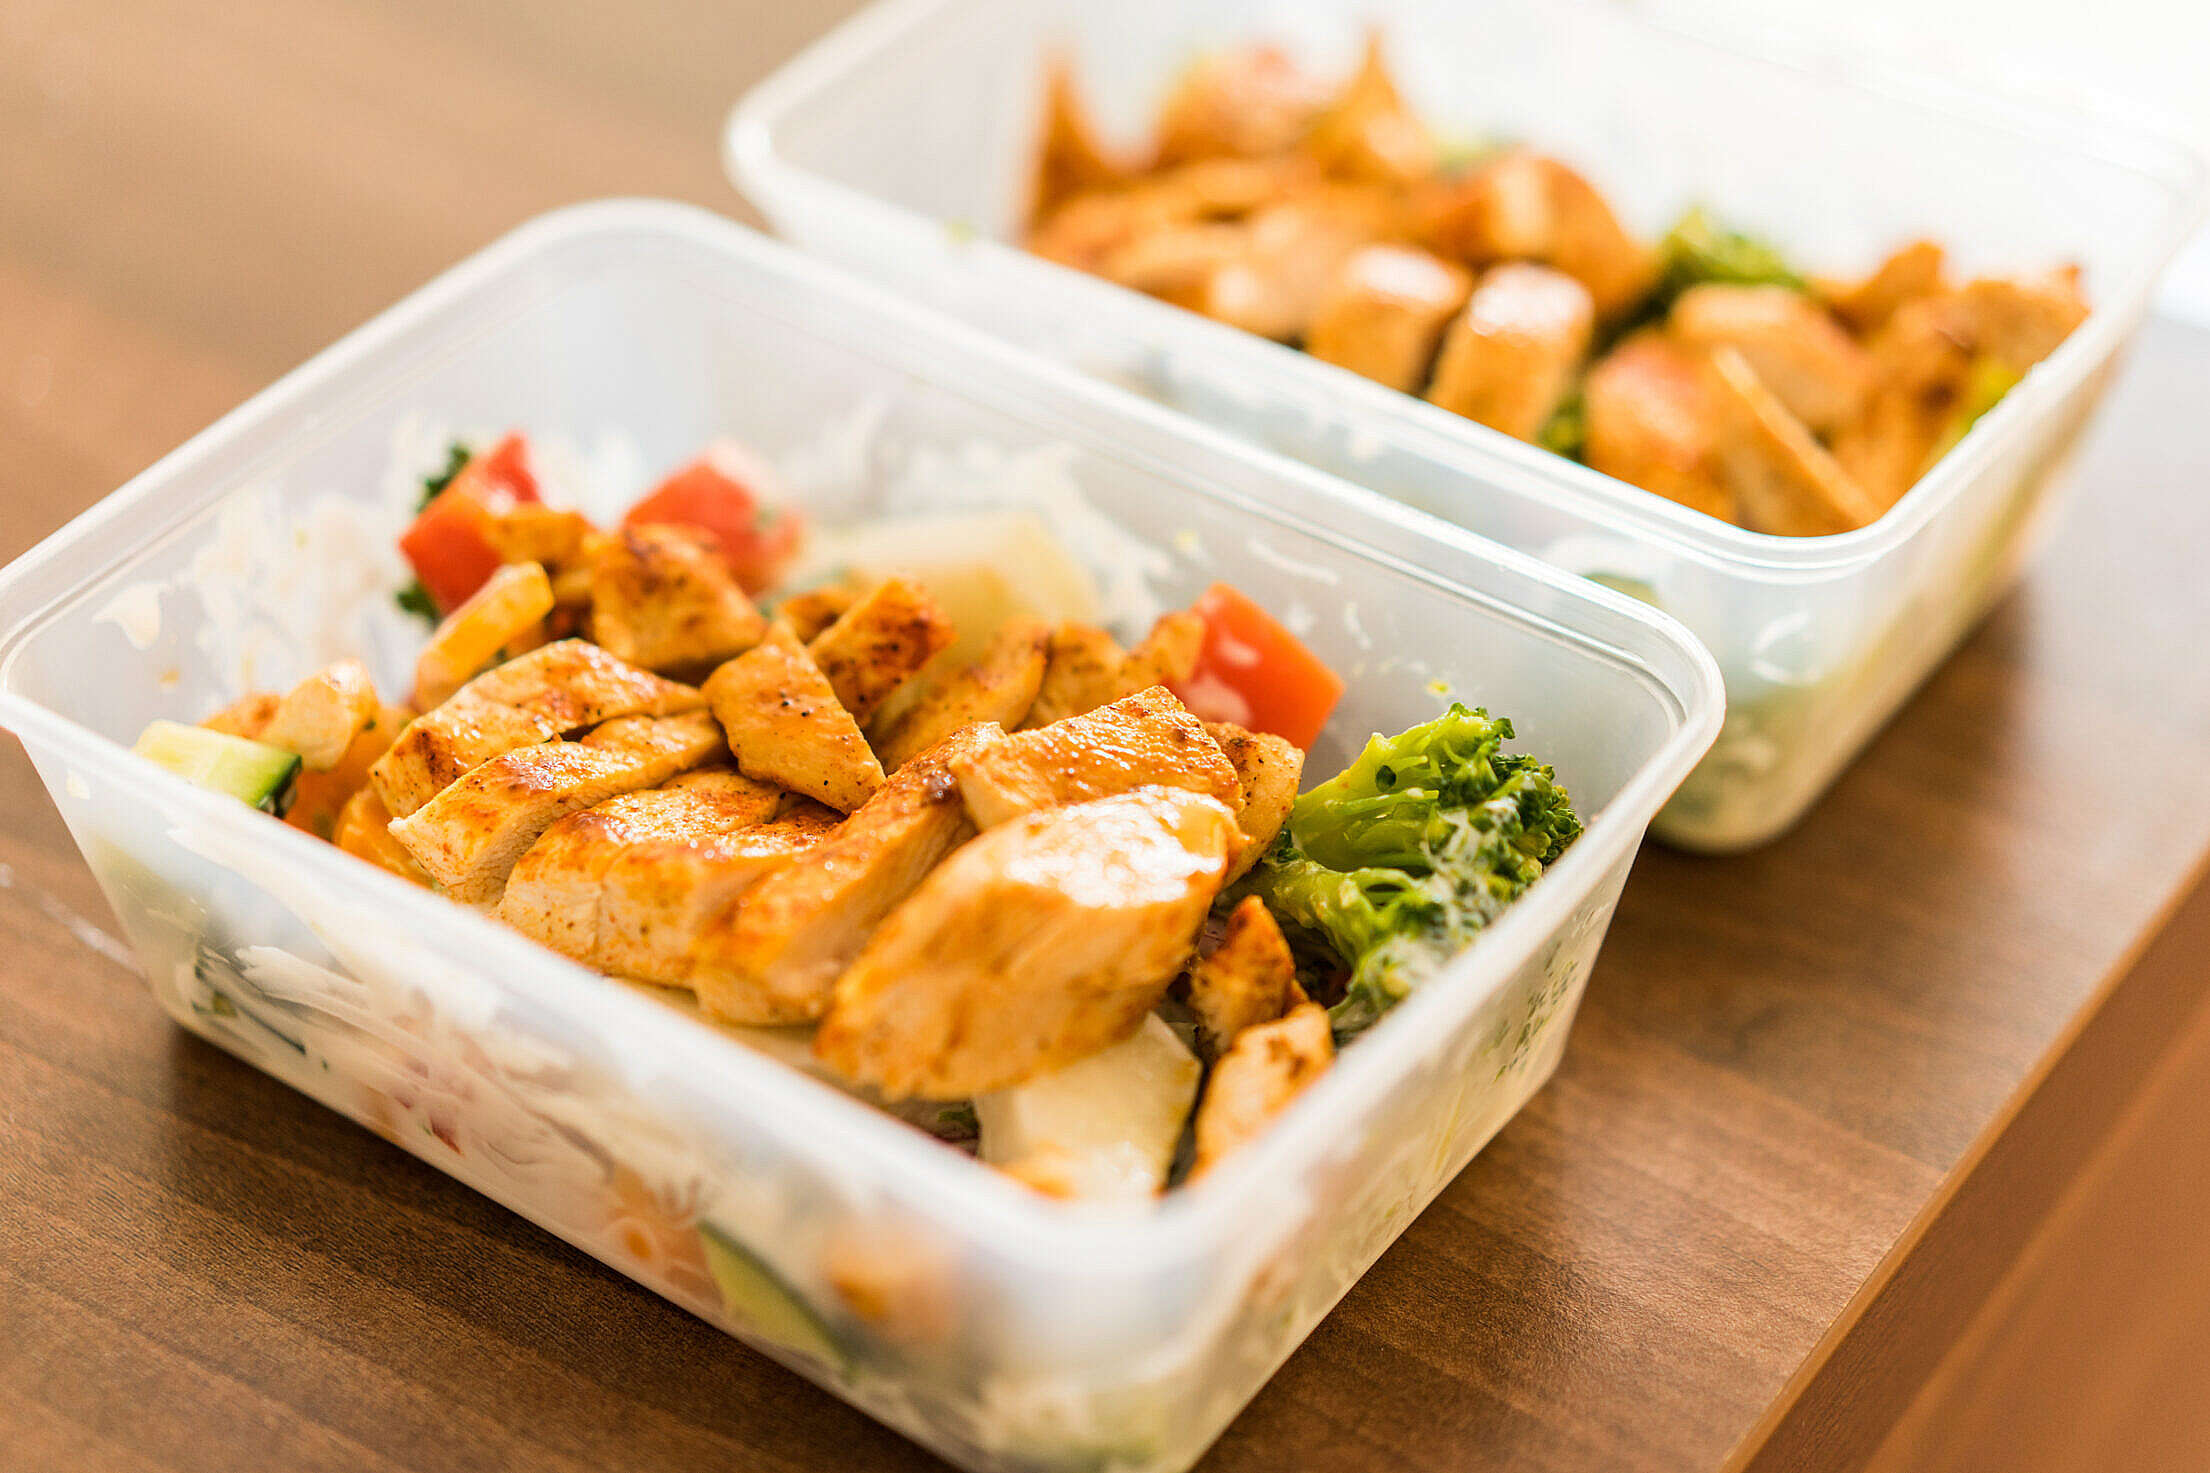 Box Diet Fitness Meal Lunch Grilled Chicken Steak Free Stock Photo